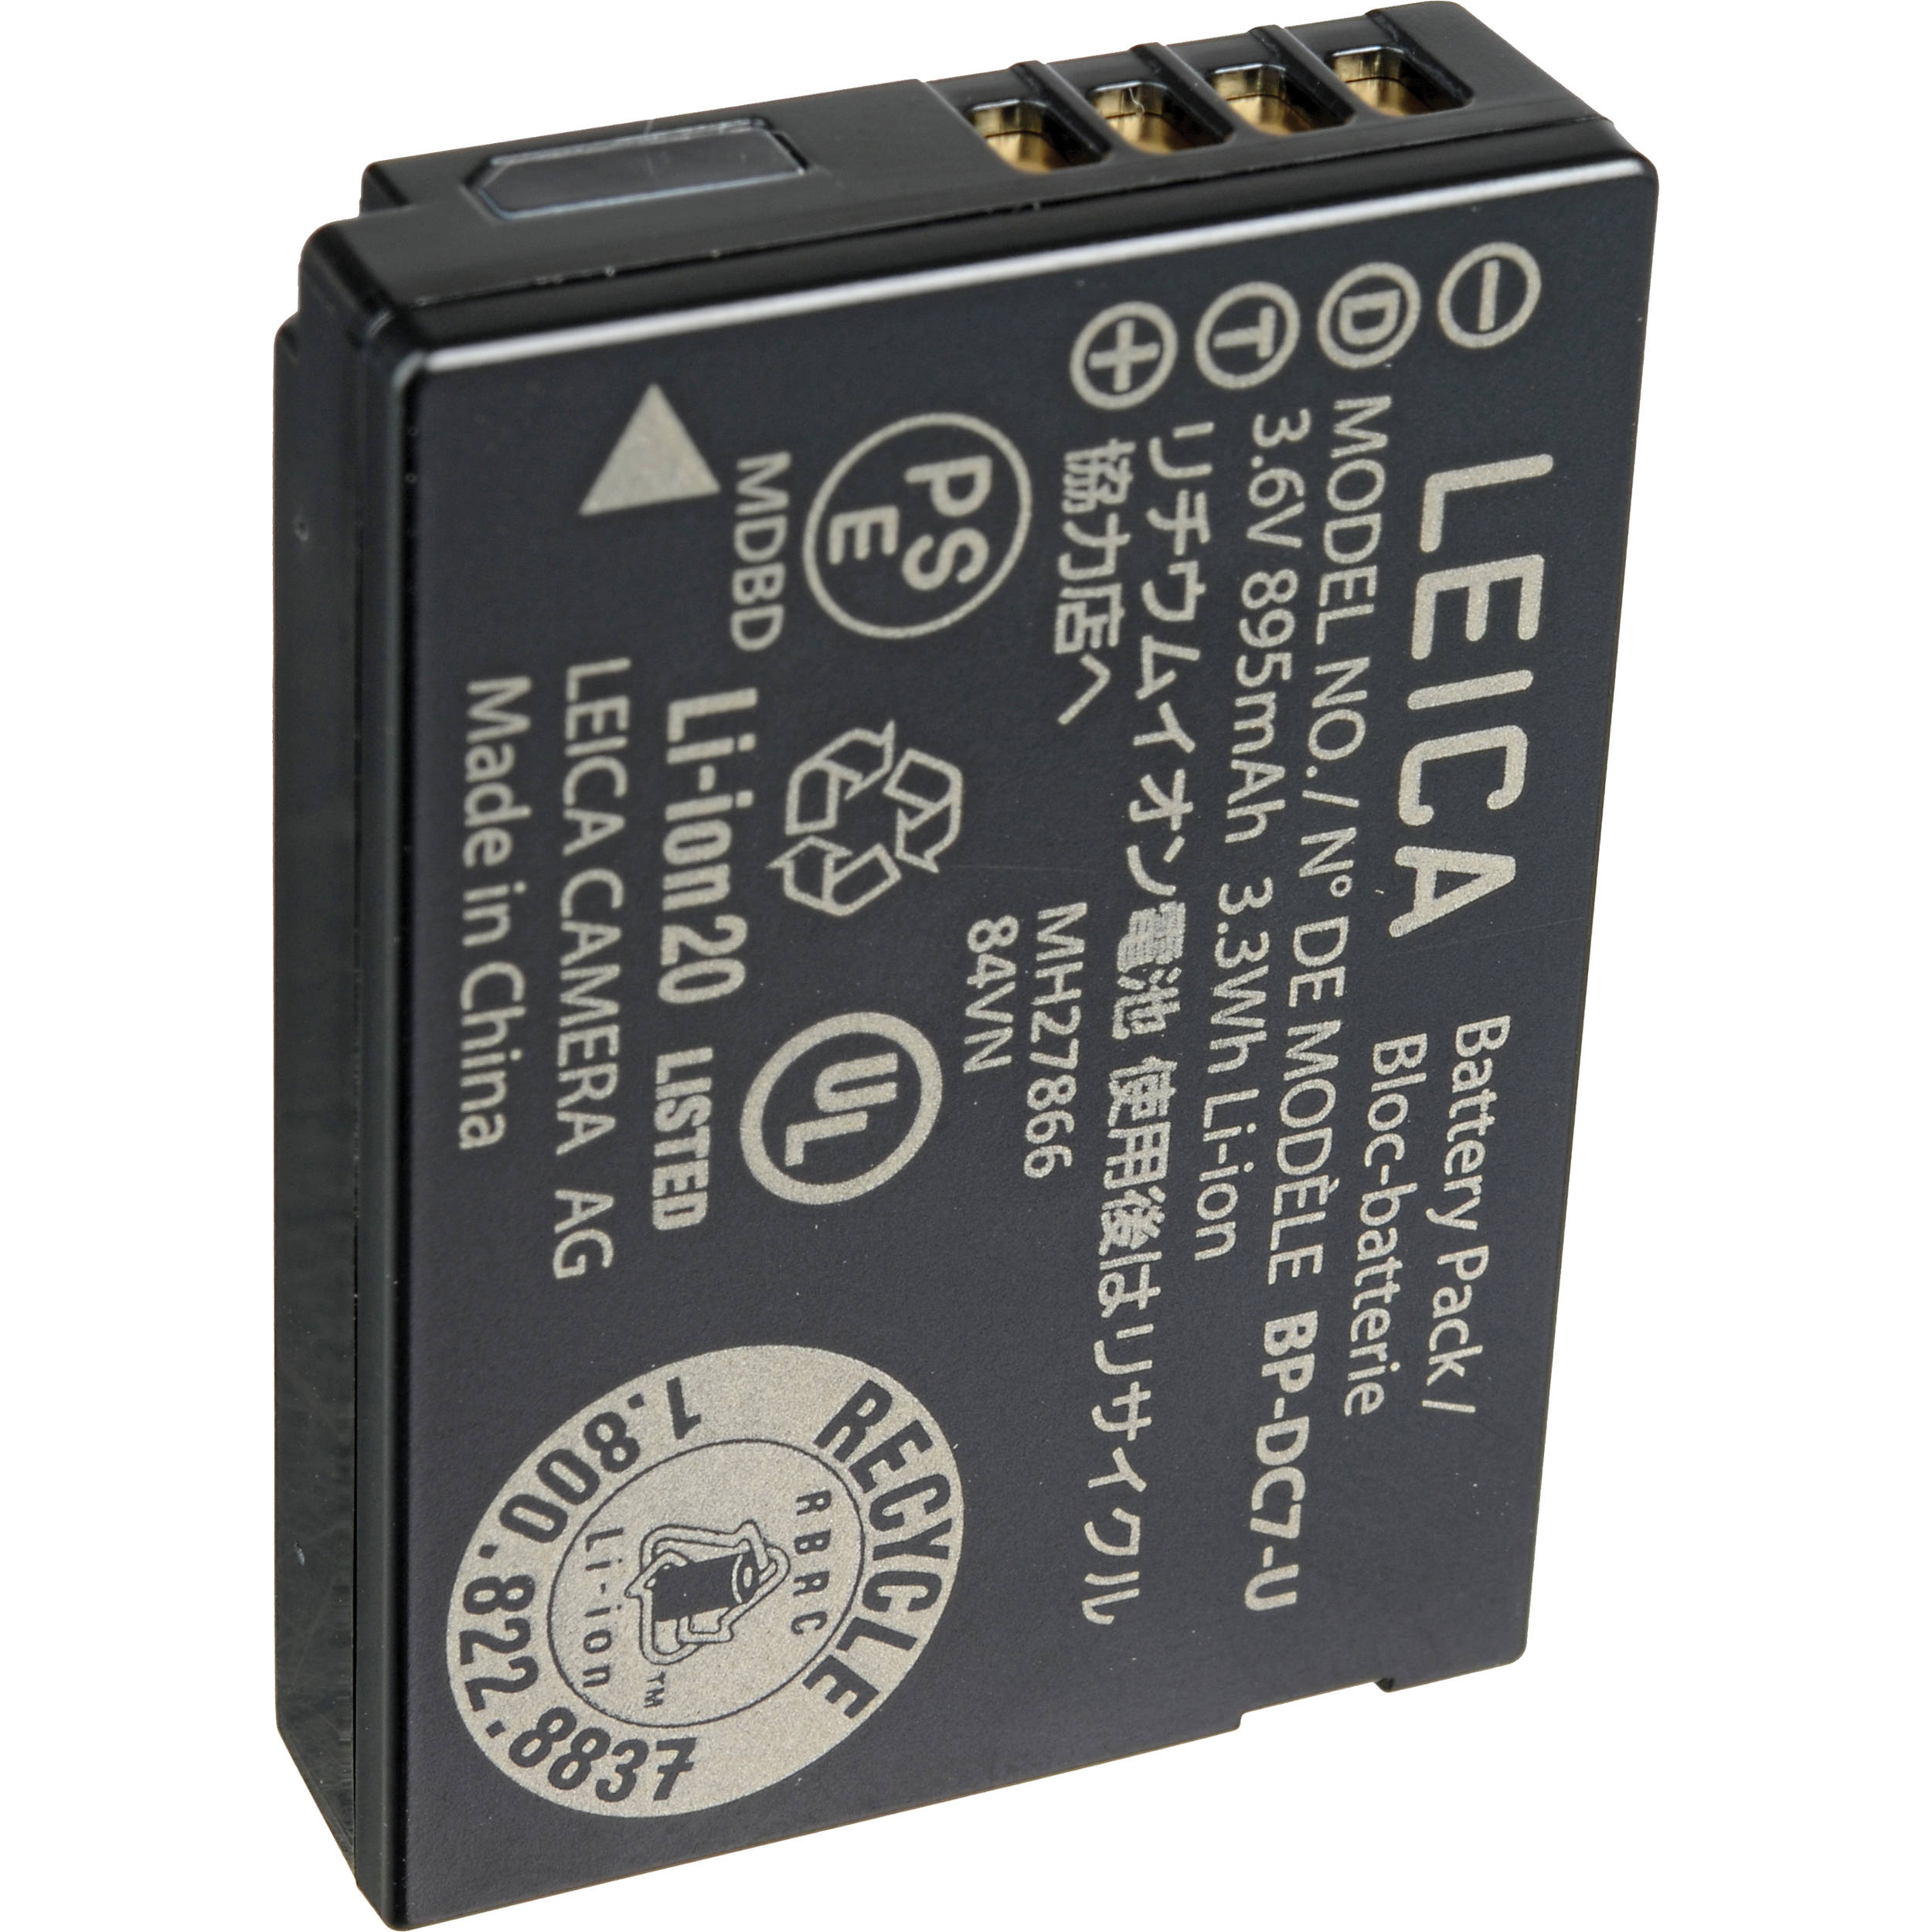 Leica Bp Dc 7 U Lithium Ion Battery For V Lux 30 40 3 6v 895mah